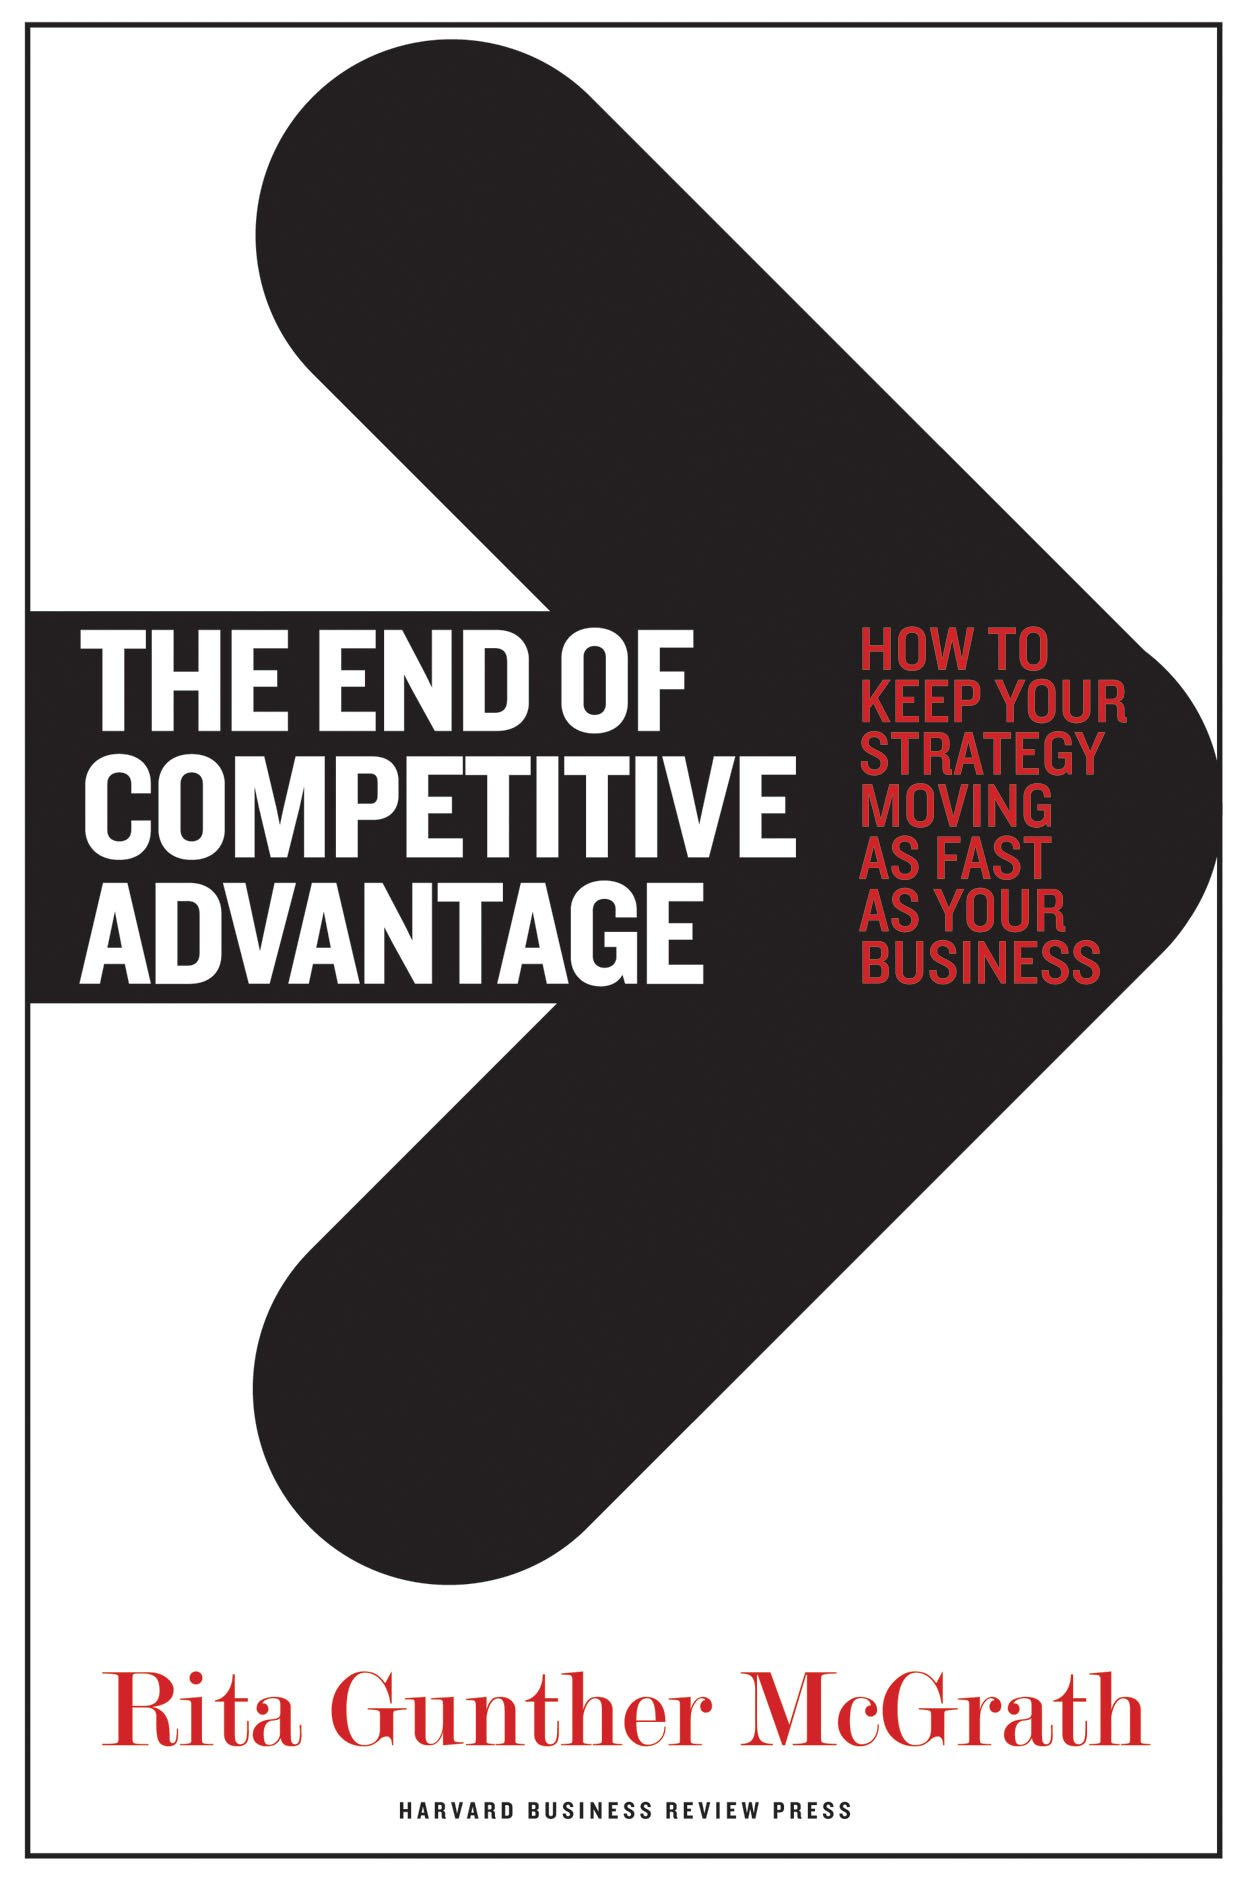 The End of Competitive Advantage: How to Keep Your Strategy Moving as Fast as Your Business: Amazon.es: Rita Gunther McGrath, Alex Gourlay: Libros en ...